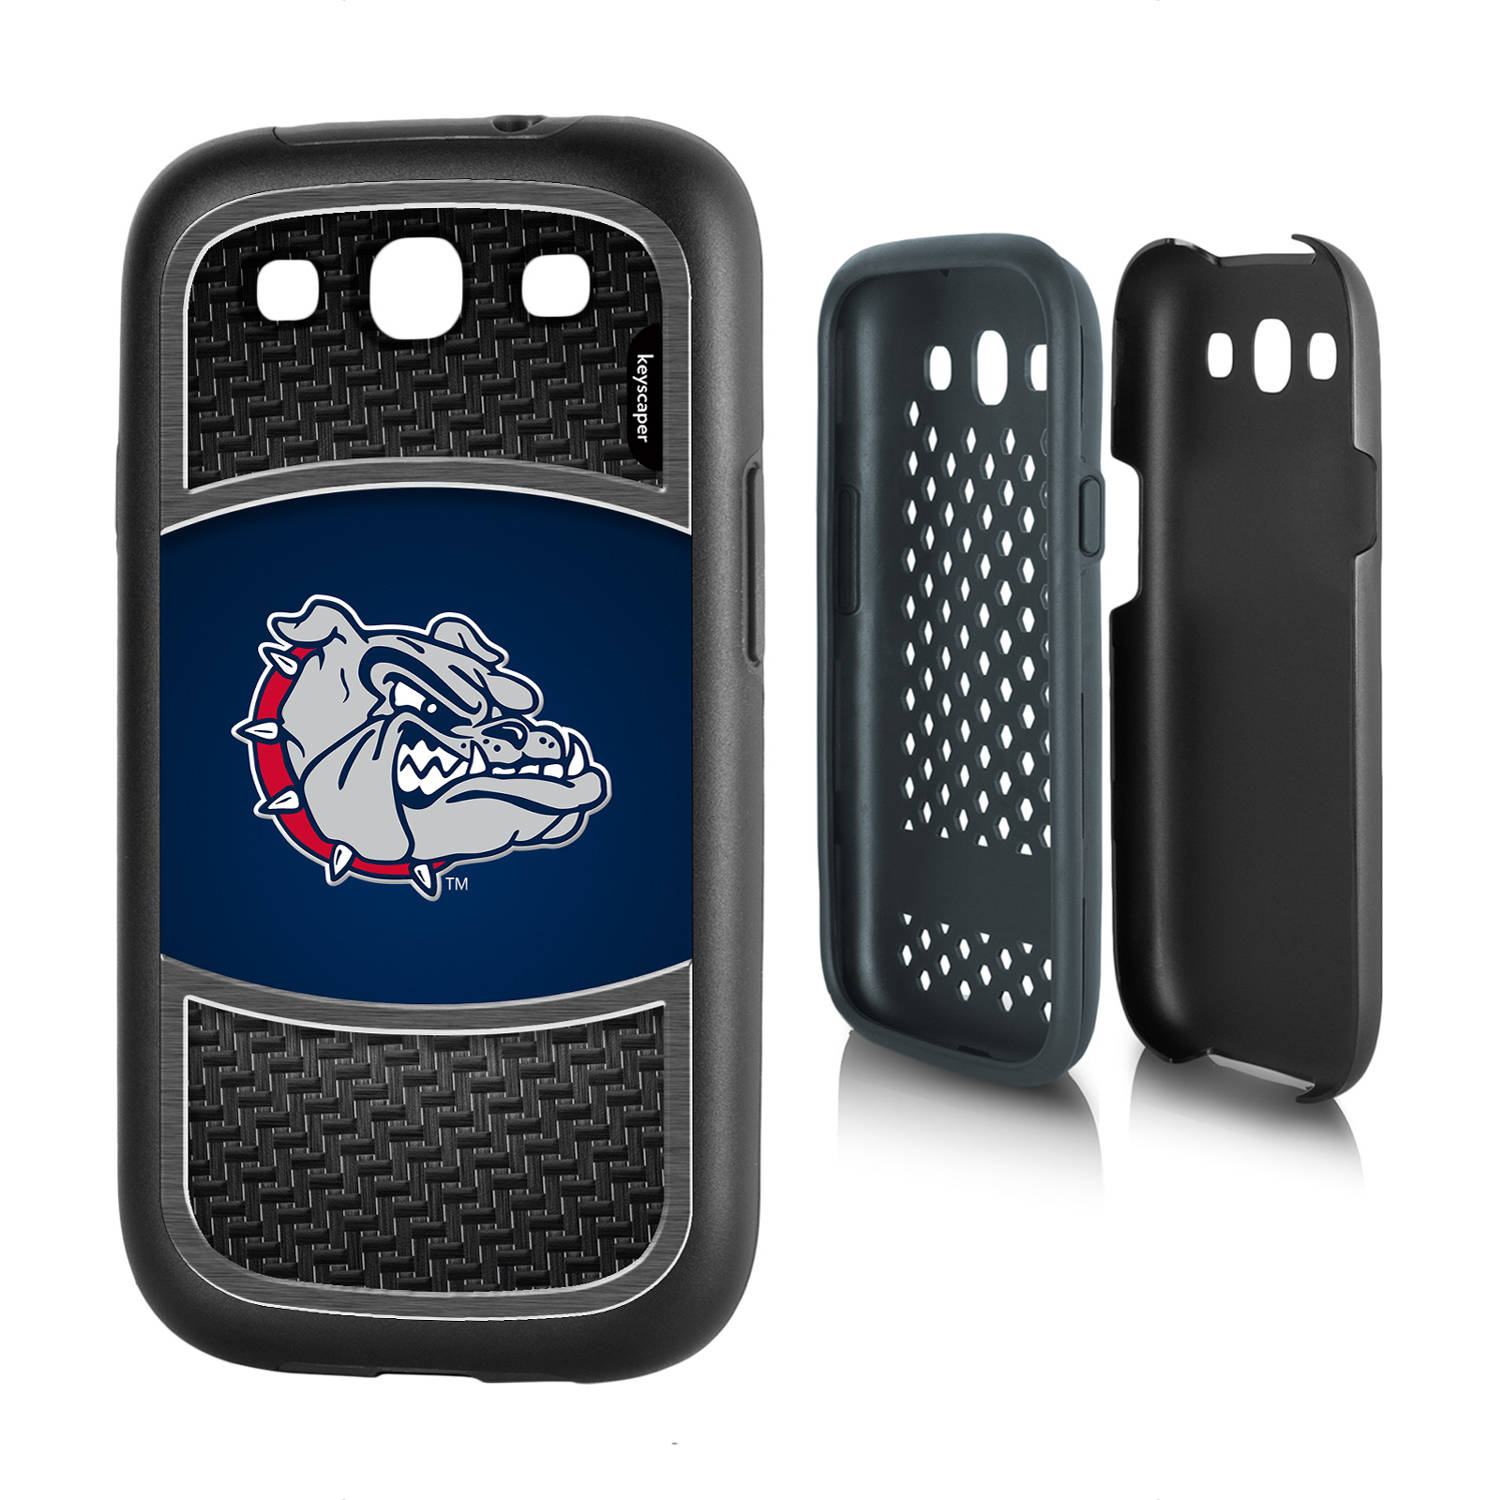 Gonzaga Bulldogs Galaxy S3 Rugged Case